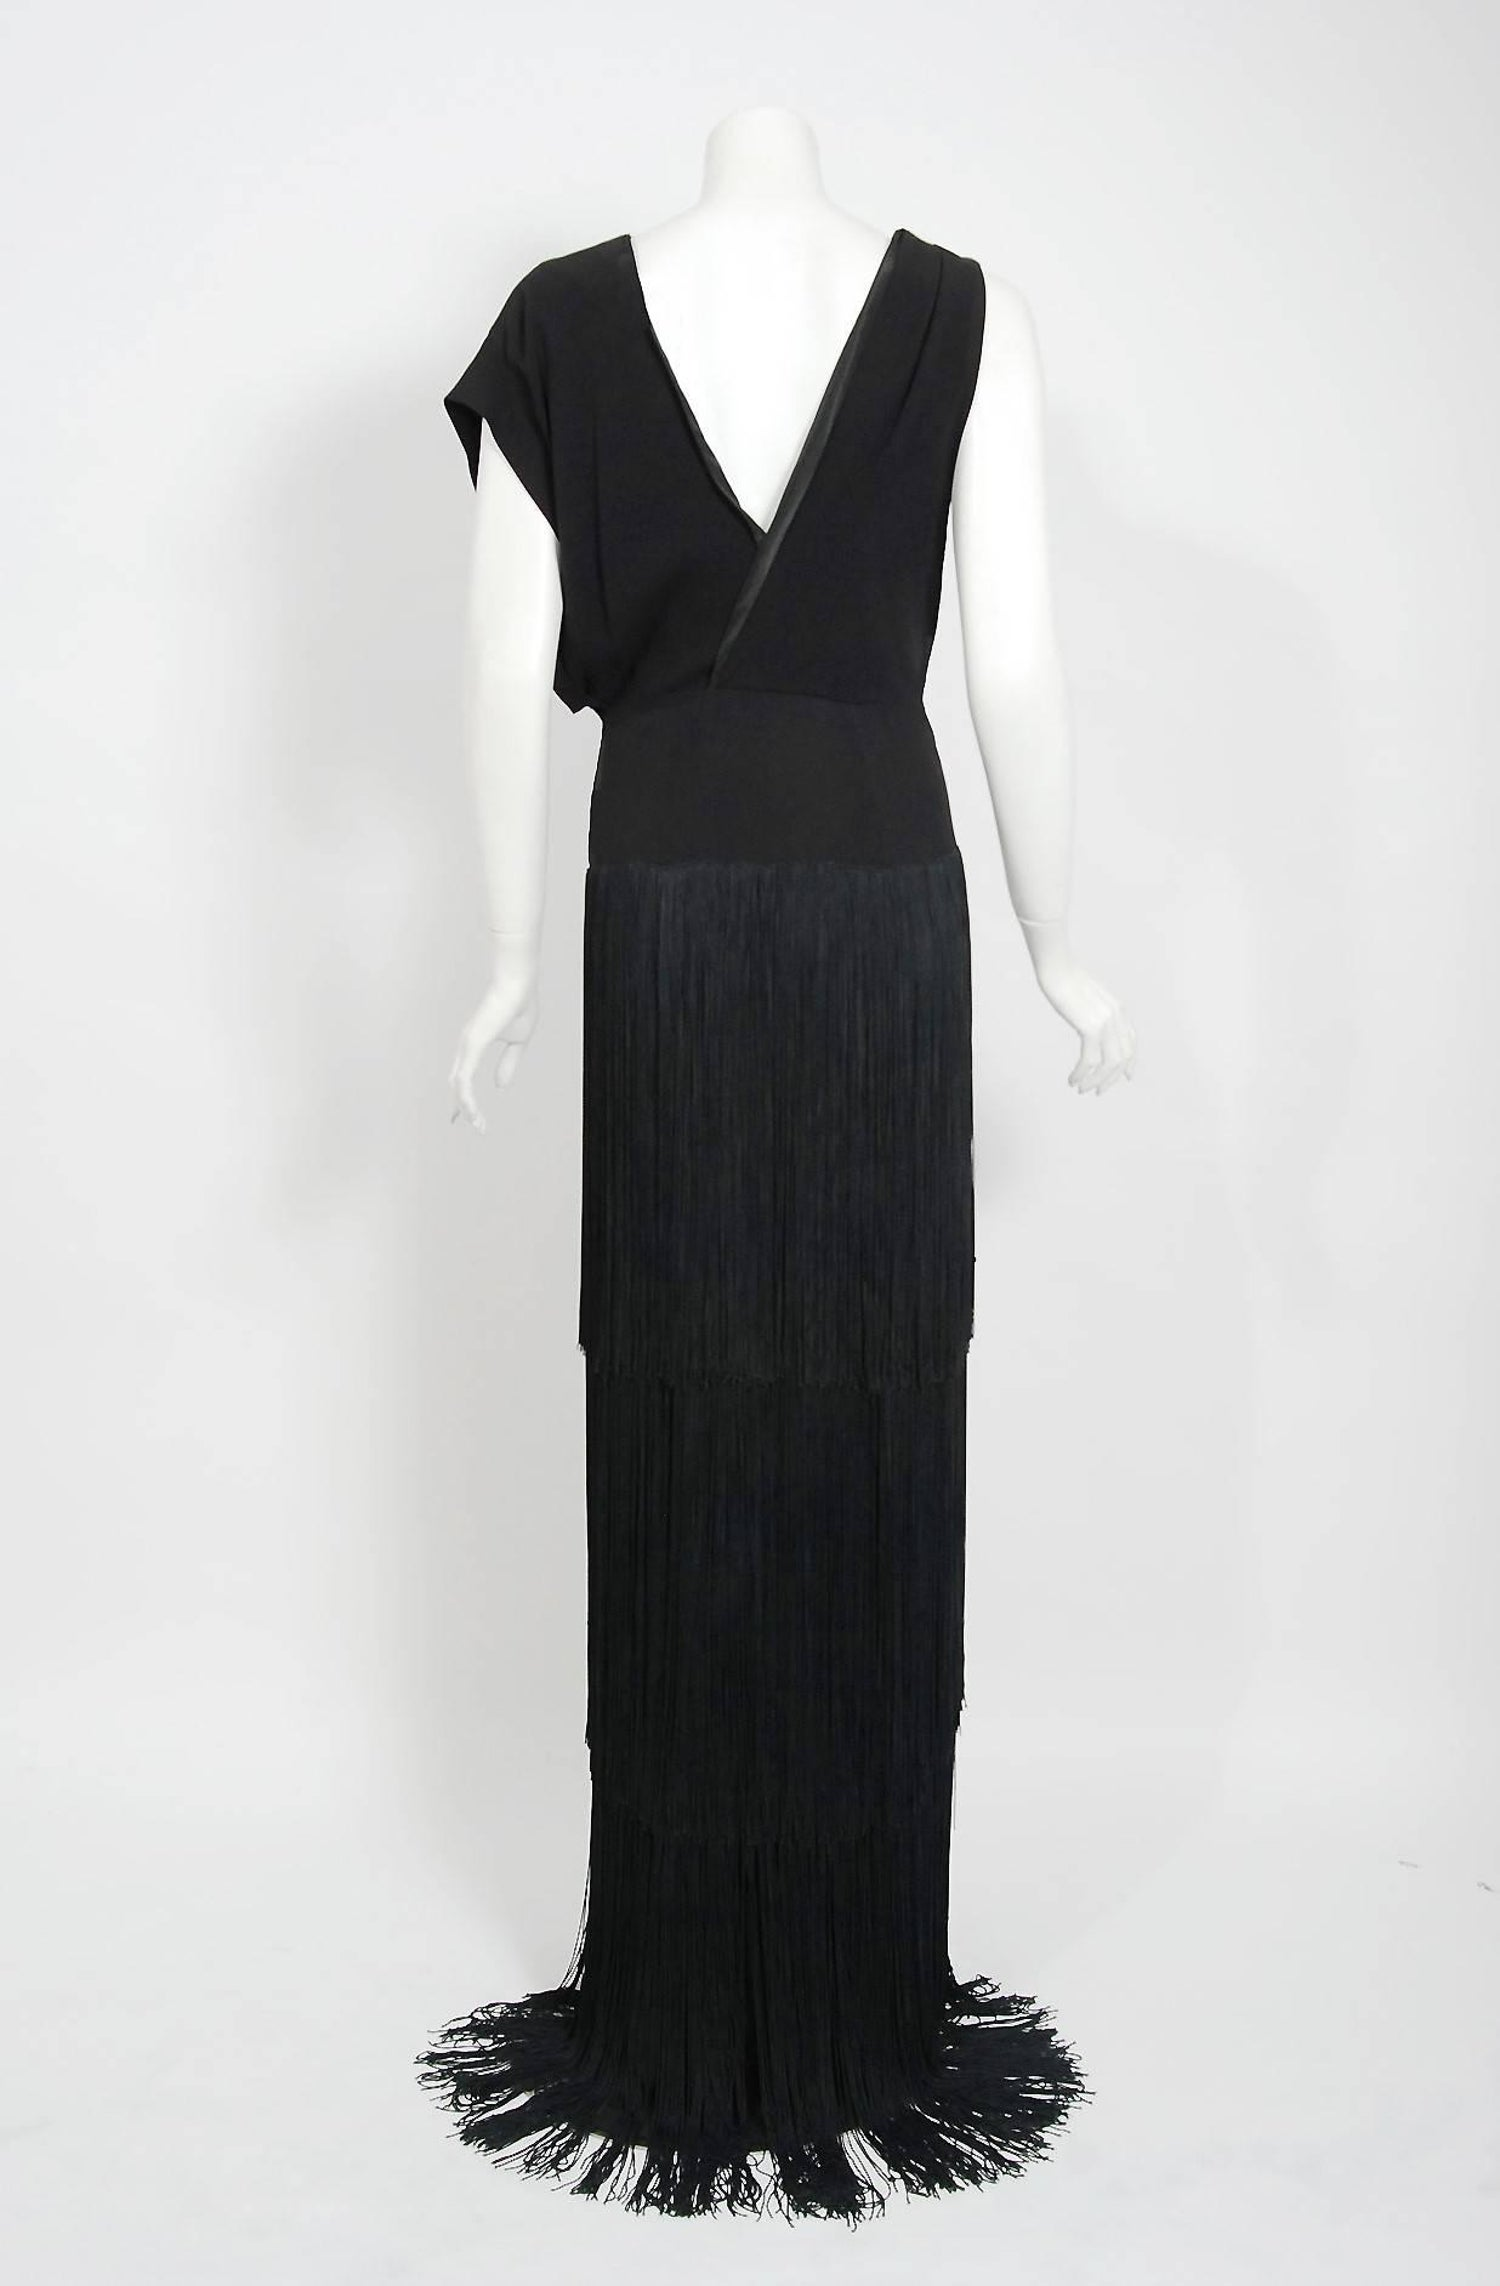 01c5f01067d 1930 s House Of Tappé Couture Black Crepe Asymmetric Drape Fringe Evening  Gown For Sale at 1stdibs